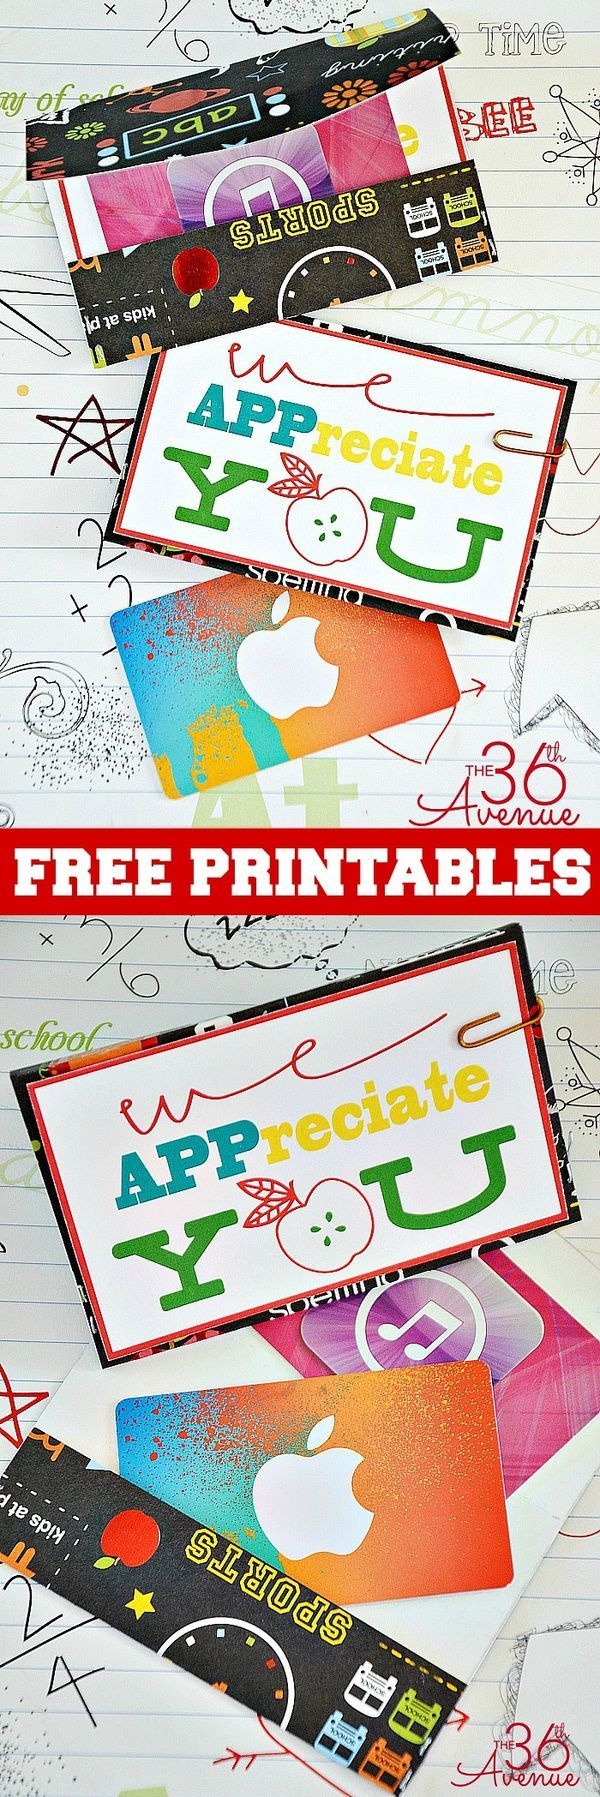 Teacher Appreciation Gift Ideas and Free Printables at the36thavenue.com